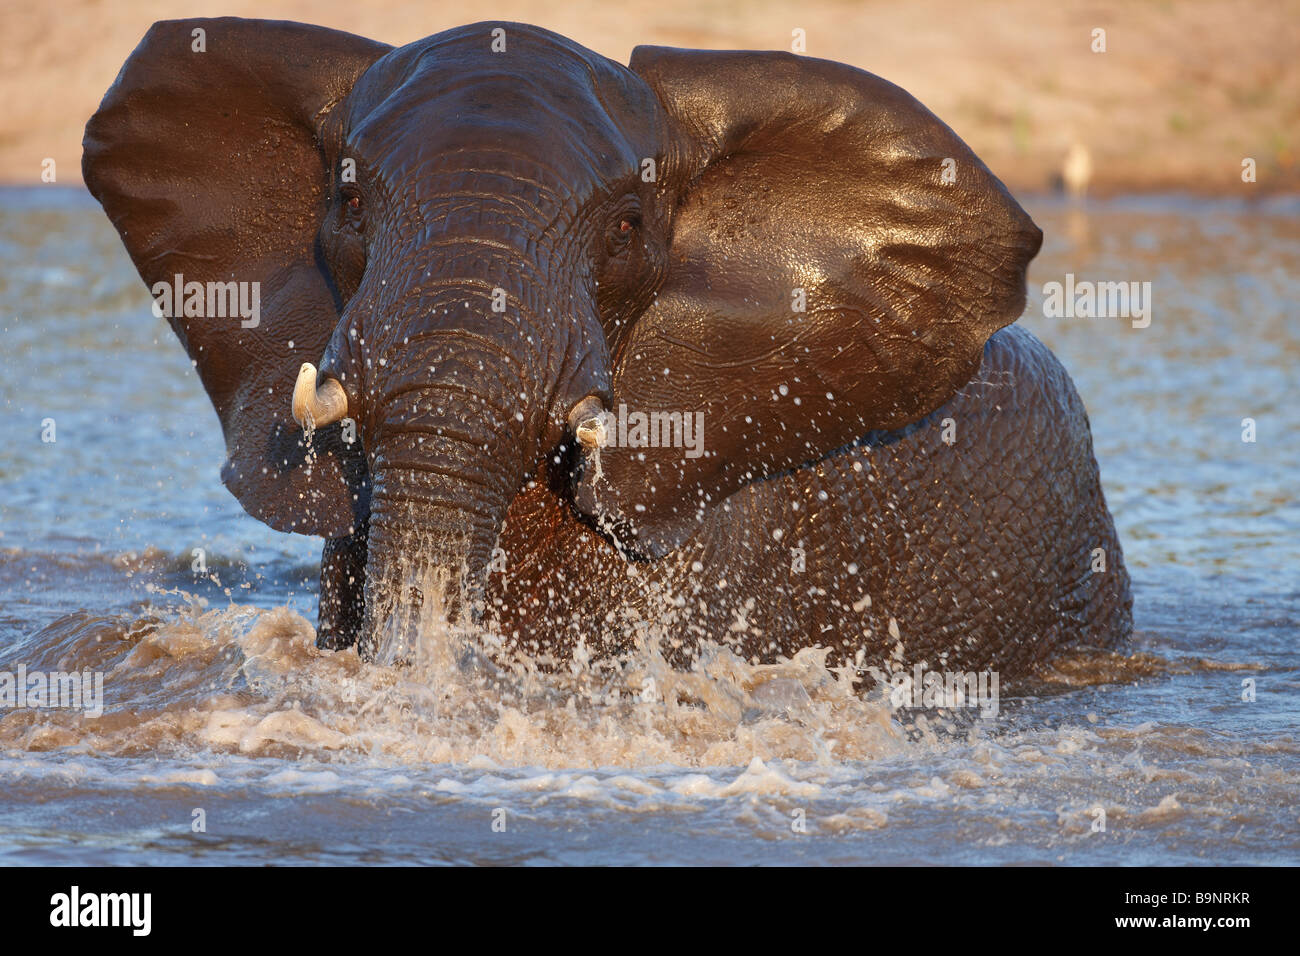 aggressive elephant in a waterhole, Kruger National Park, South Africa - Stock Image